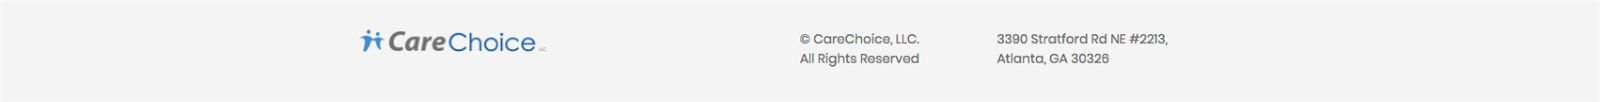 CareChoice footer section